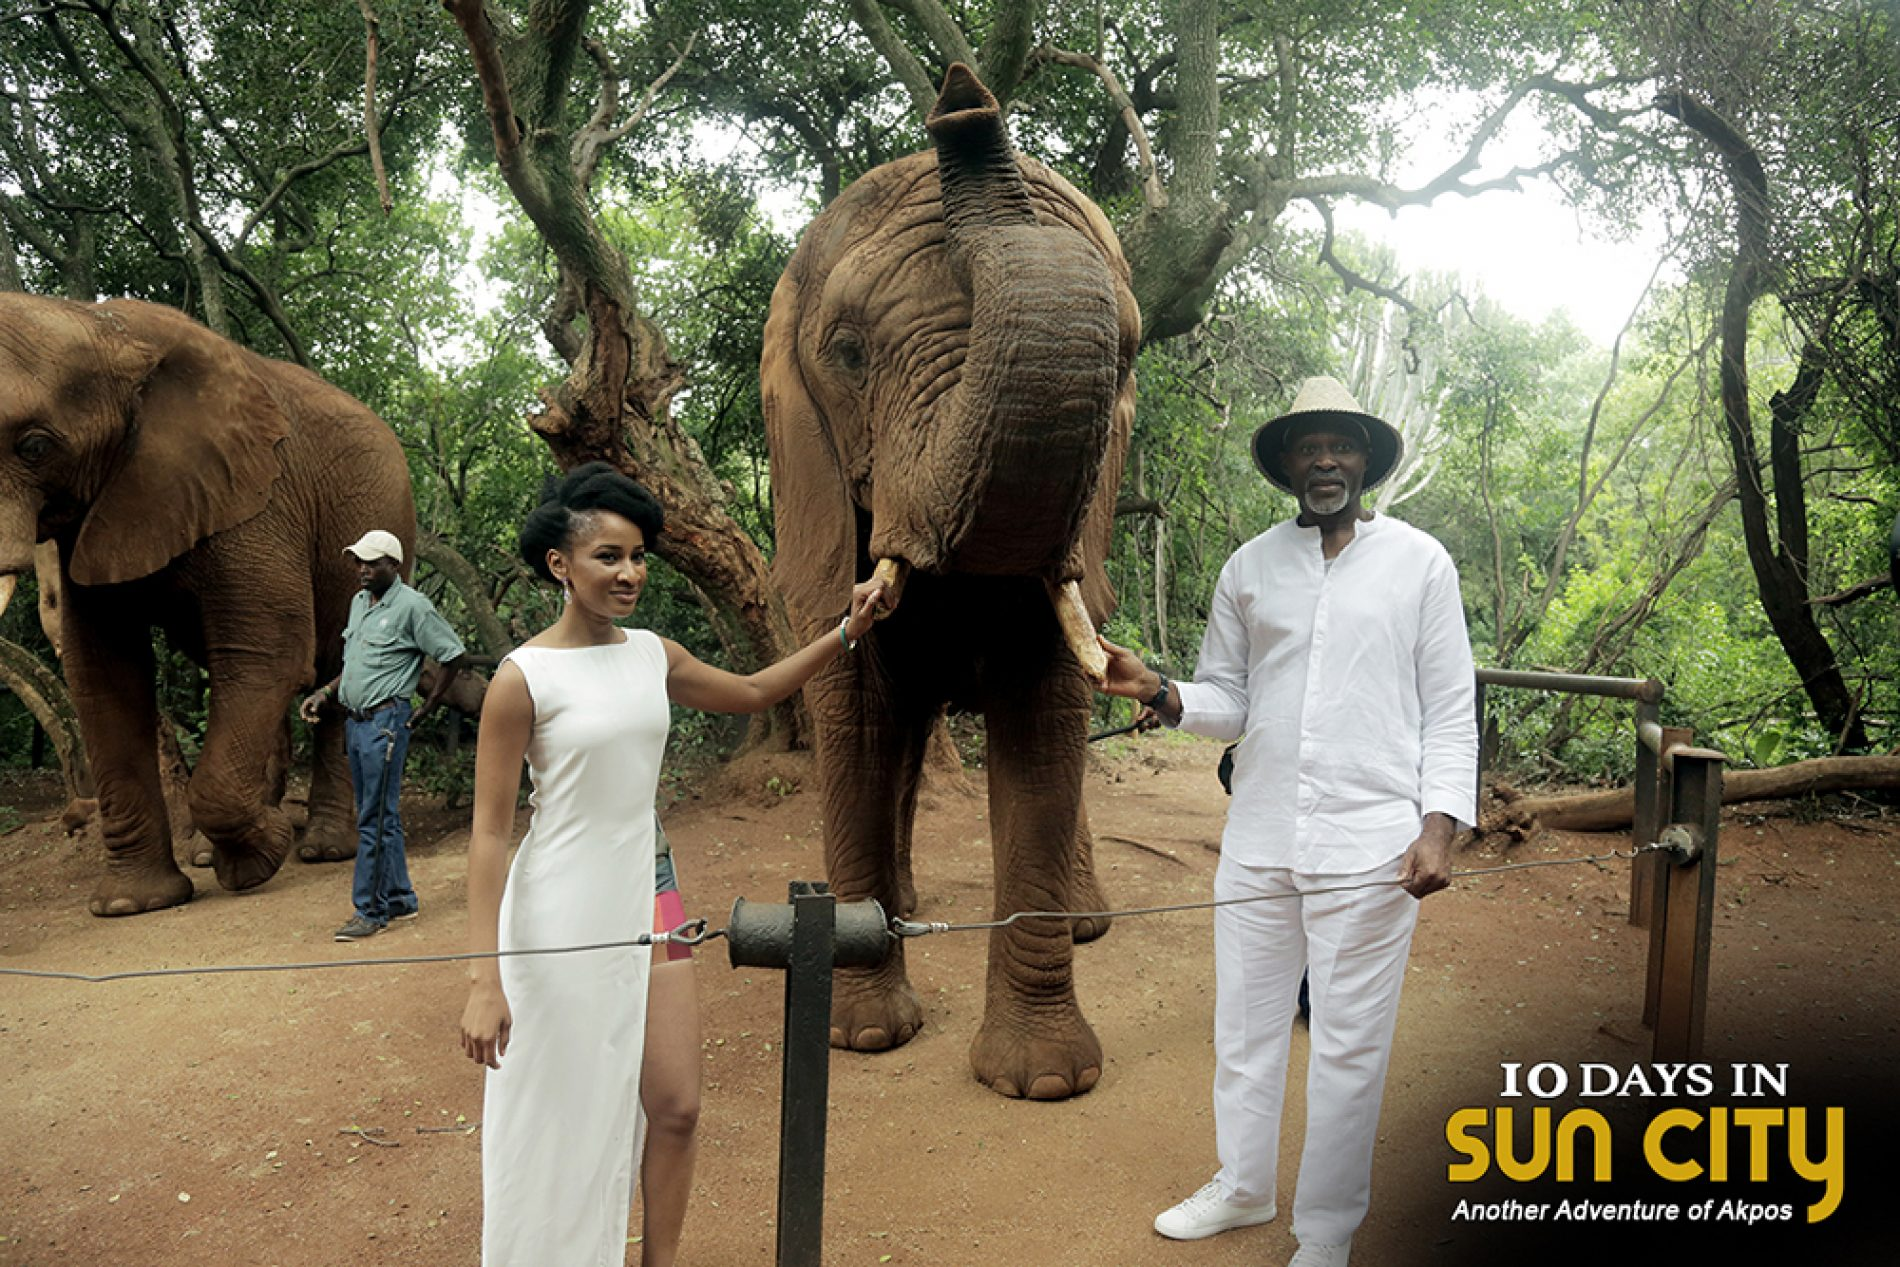 South African Tourism sponsors AY's new movie, 10 days in Sun City